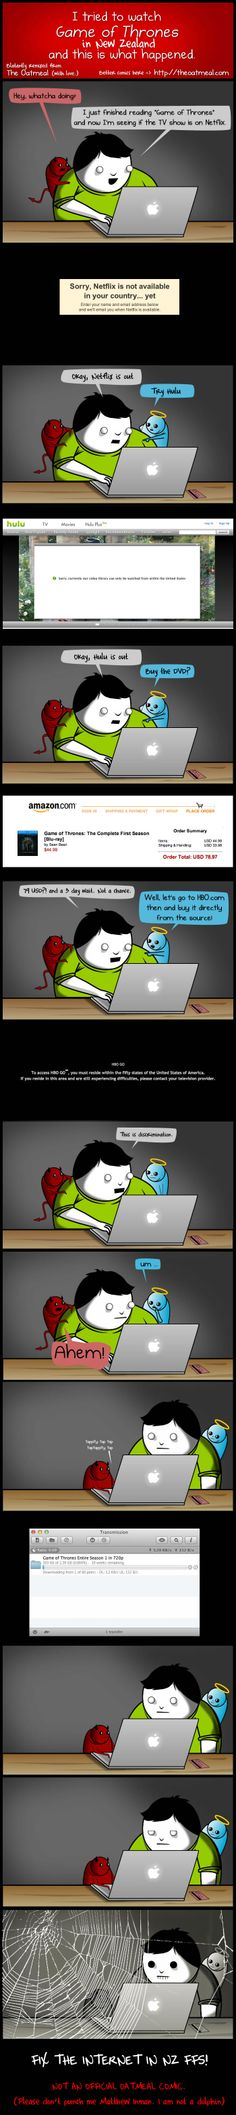 the oatmeal remix (applies to us in CZ as well. just the waiting would be probably even longer - and torrents are slightly faster).